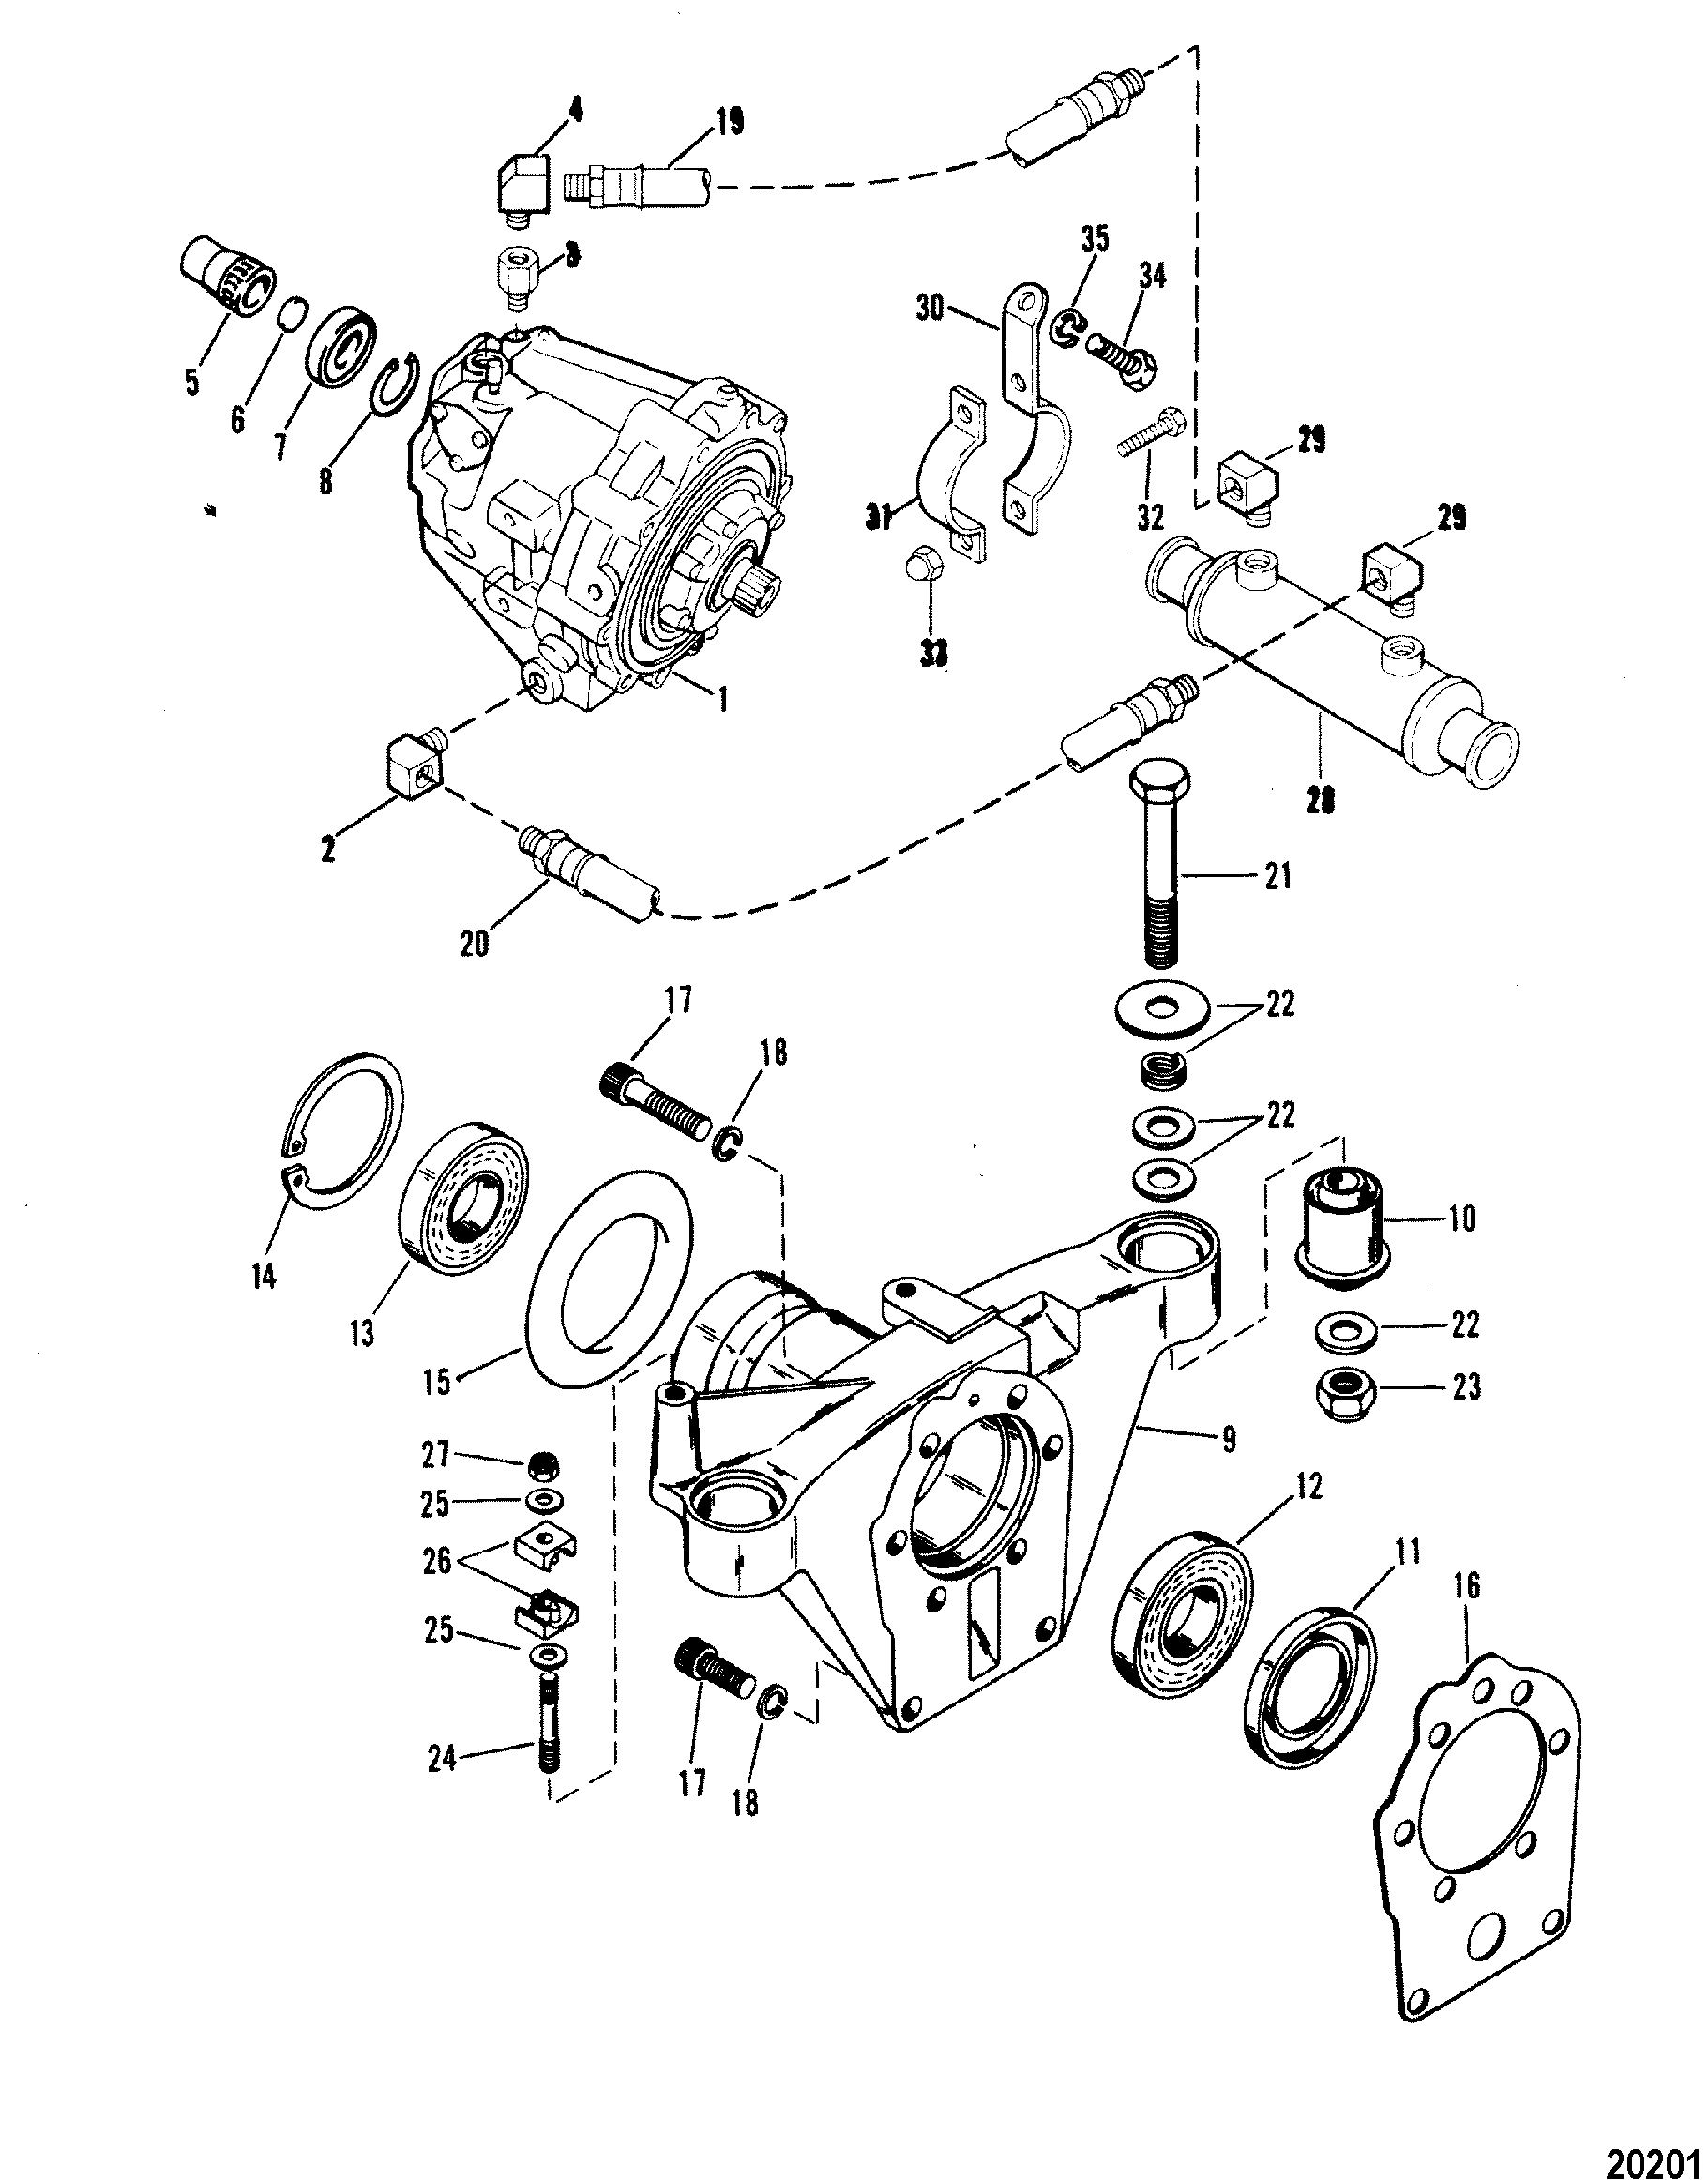 Transmission And Tailstock For Mercruiser 330 H P Engine